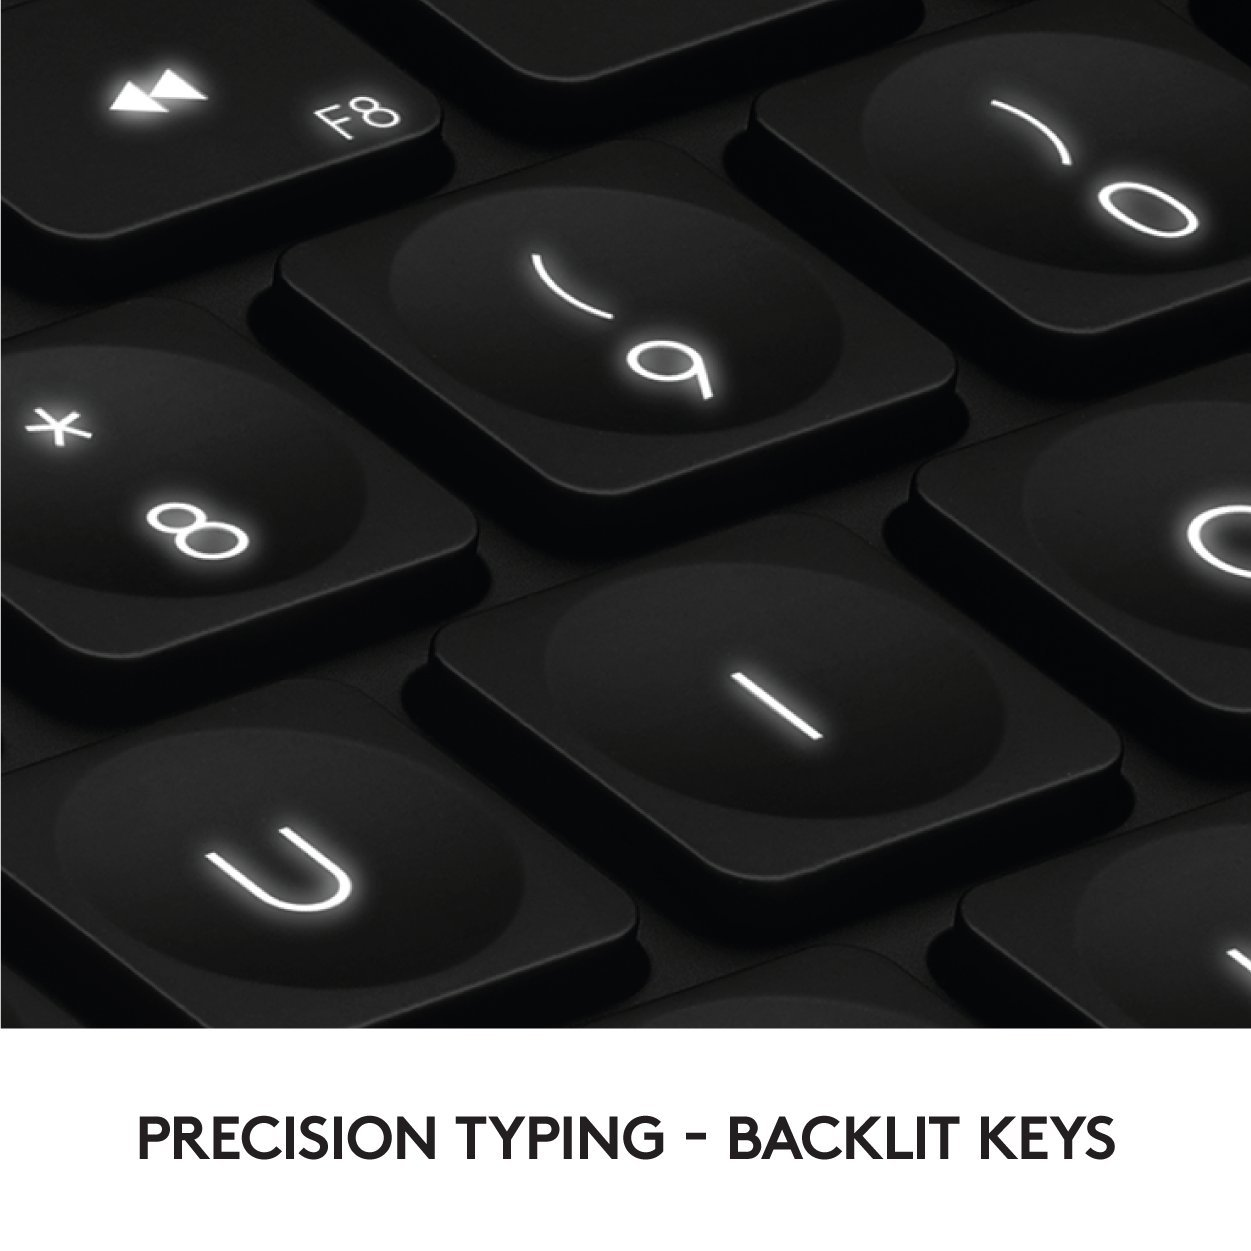 Logitech Craft Advanced Wireless Keyboard with Creative Input Dial and Backlit Keys, Dark grey and aluminum by Logitech (Image #6)